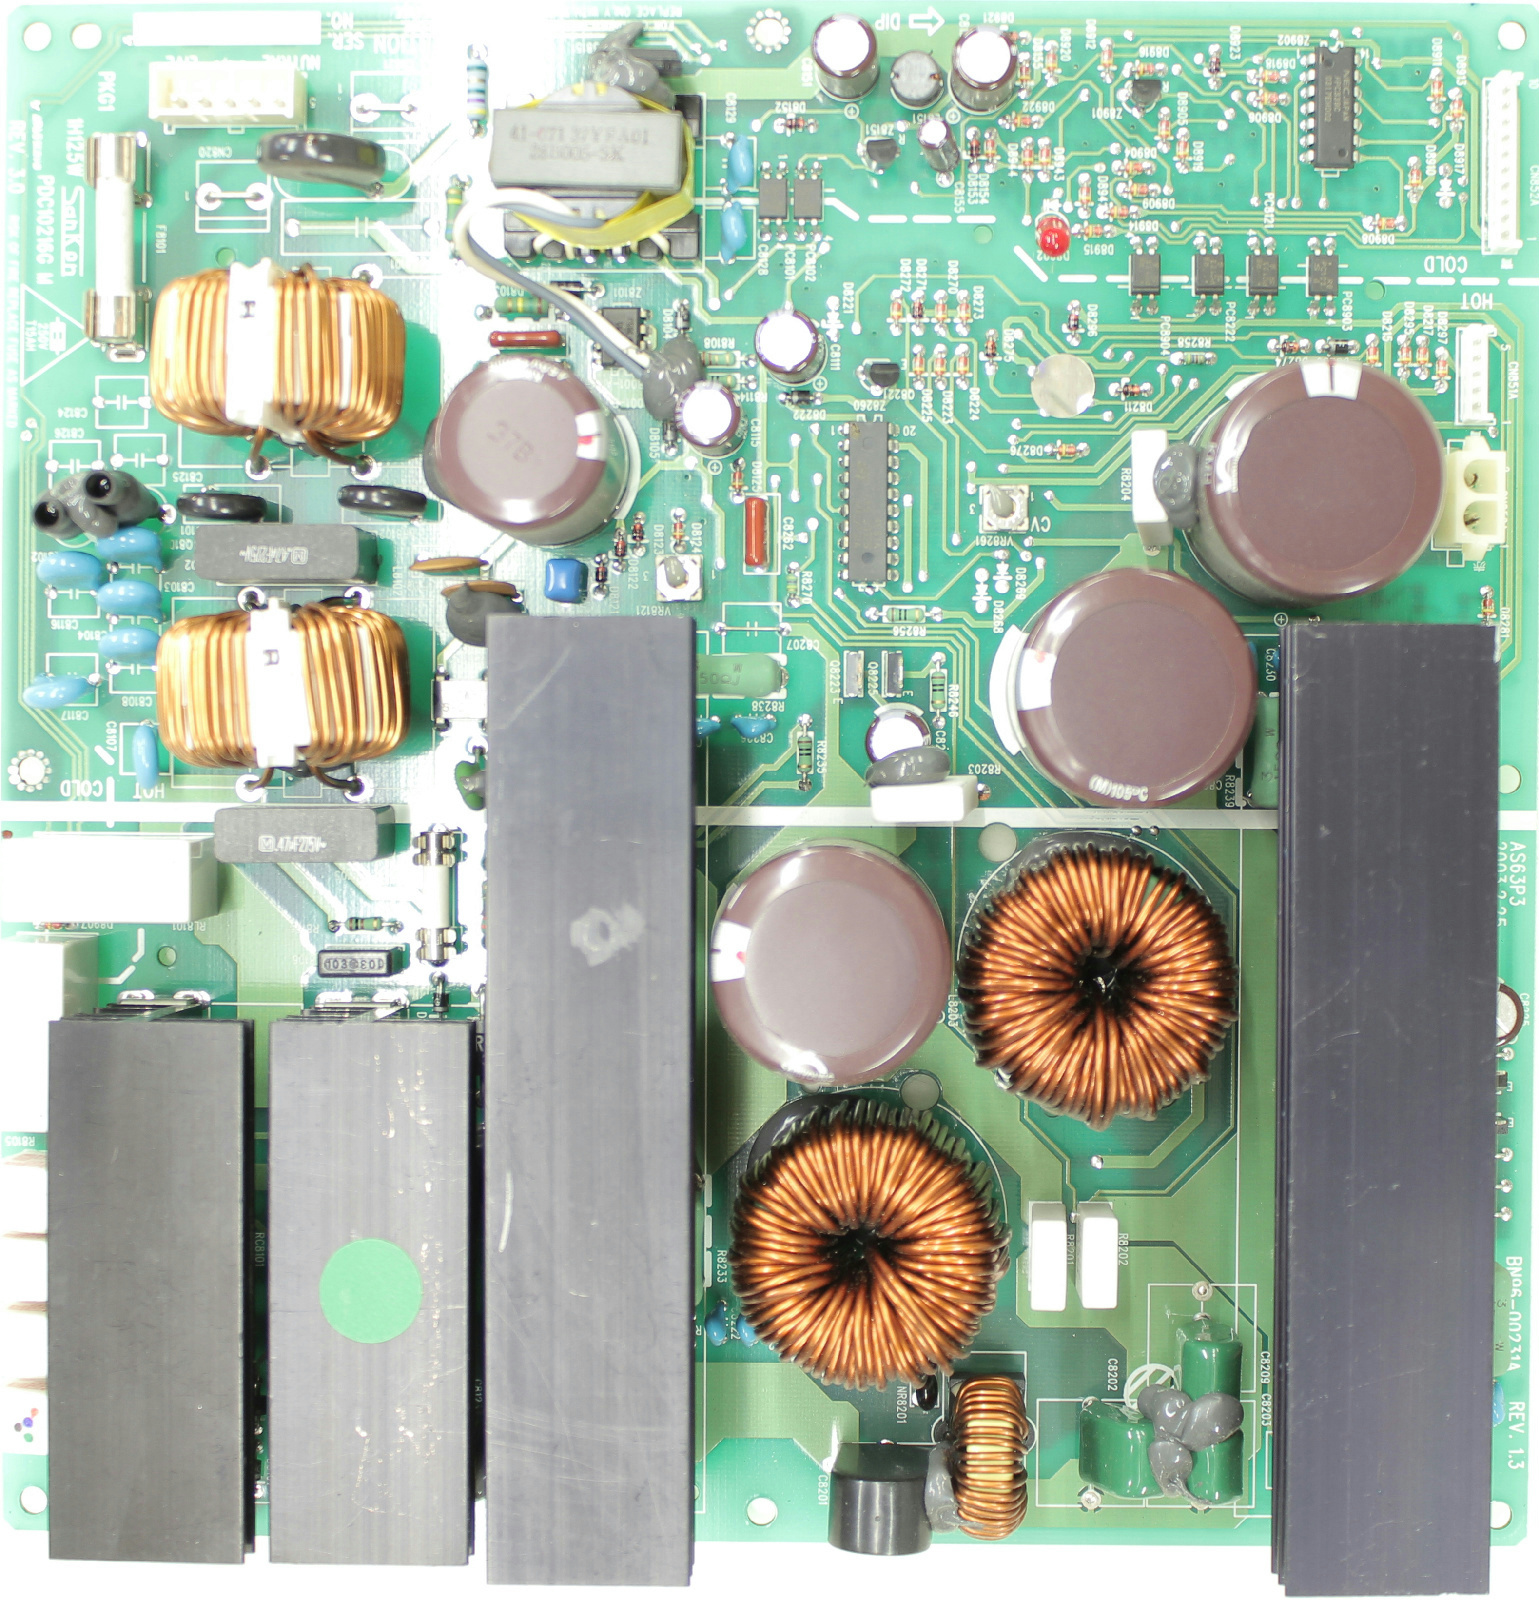 Samsung Ppm63h3x Xaa Power Supply Bn96 00231a Tvparts At Circuit Board With Electronic Components Inside A Computer Stock Photo